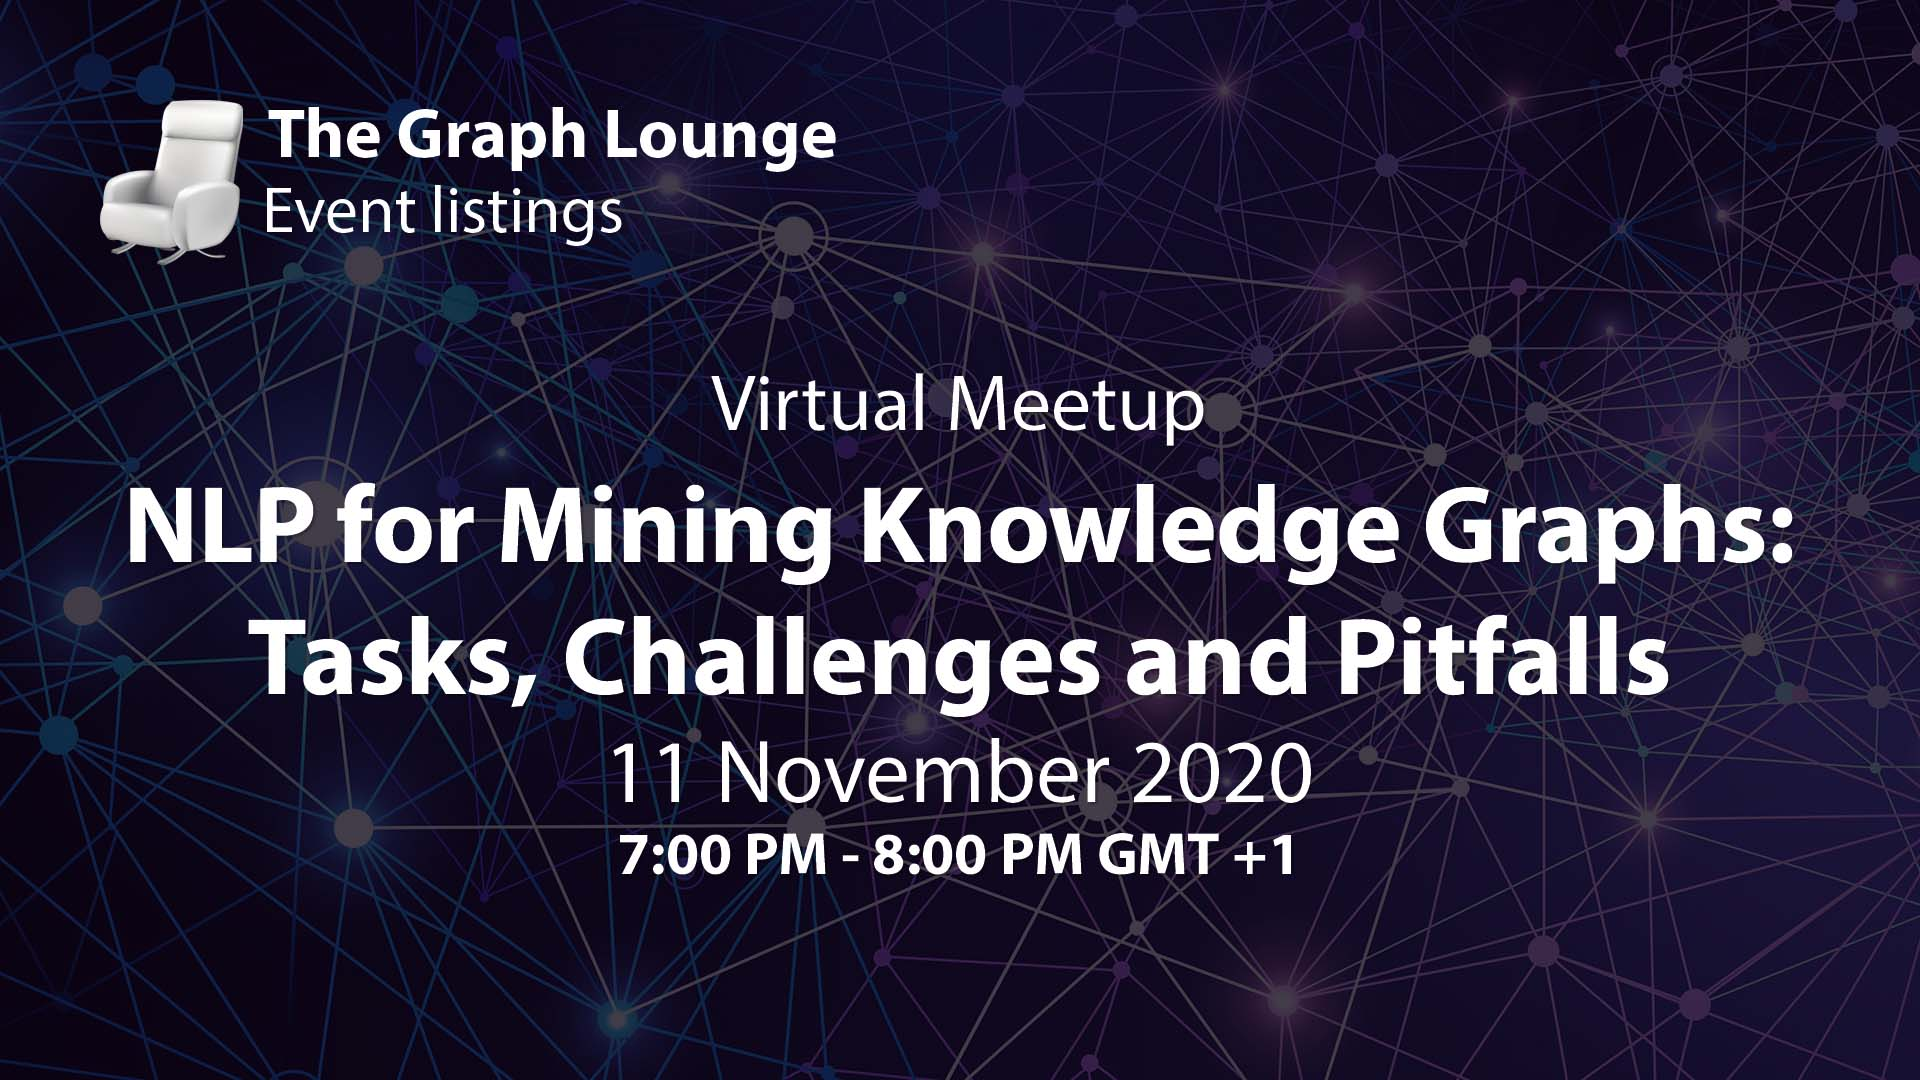 NLP for Mining Knowledge Graphs: Tasks, Challenges and Pitfalls